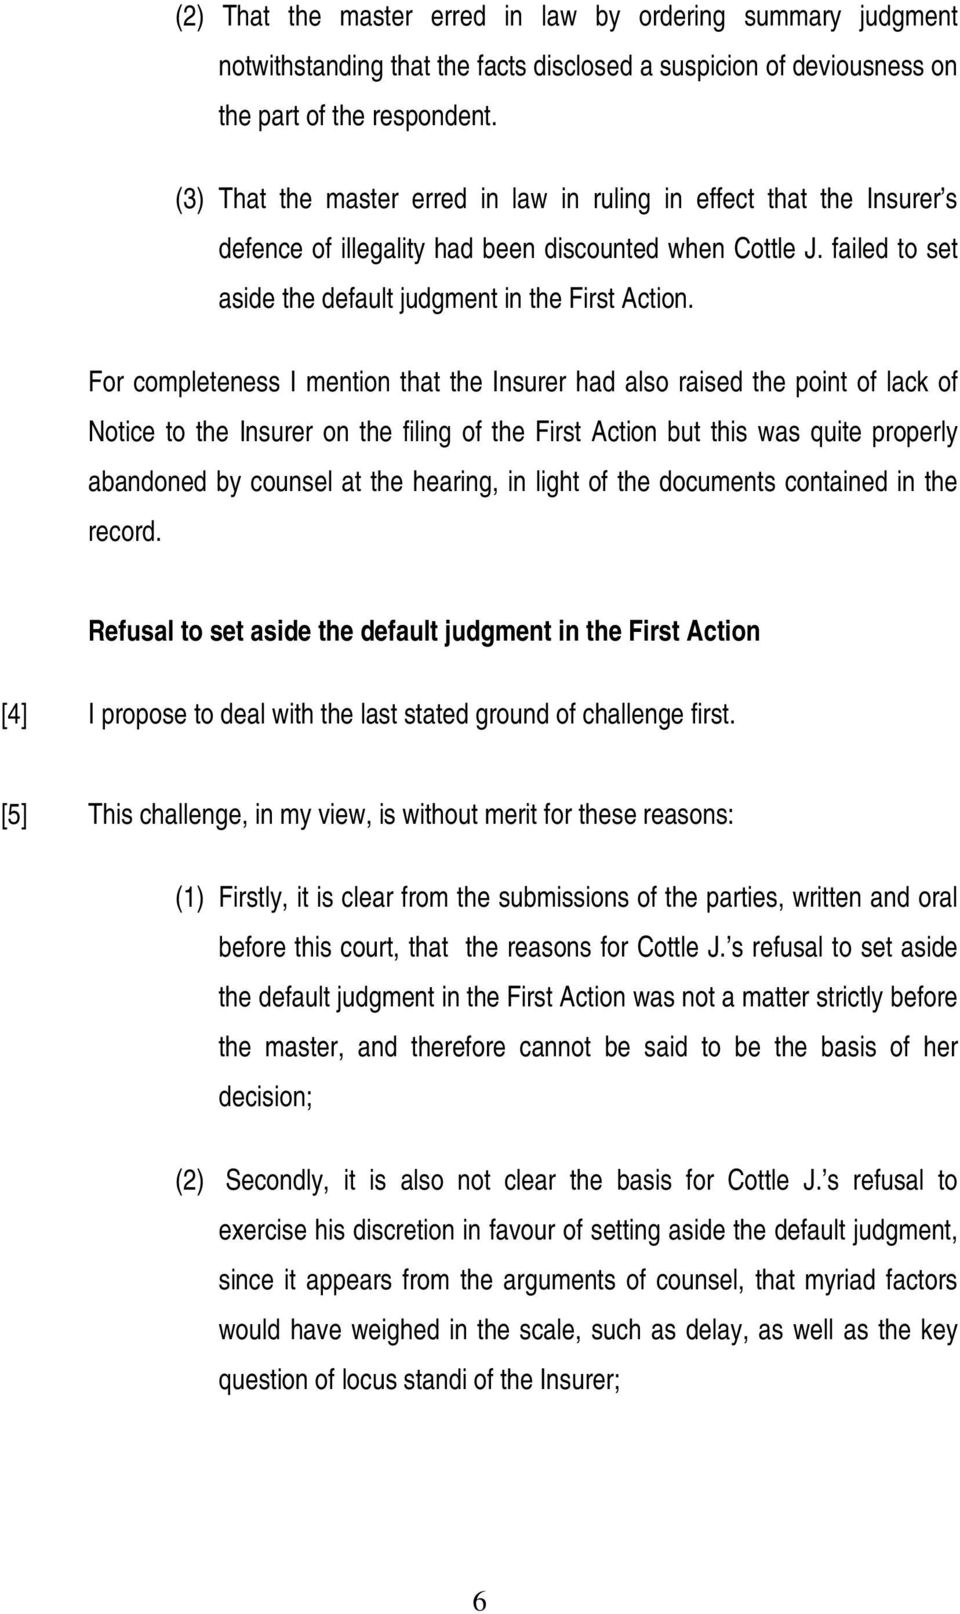 For completeness I mention that the Insurer had also raised the point of lack of Notice to the Insurer on the filing of the First Action but this was quite properly abandoned by counsel at the